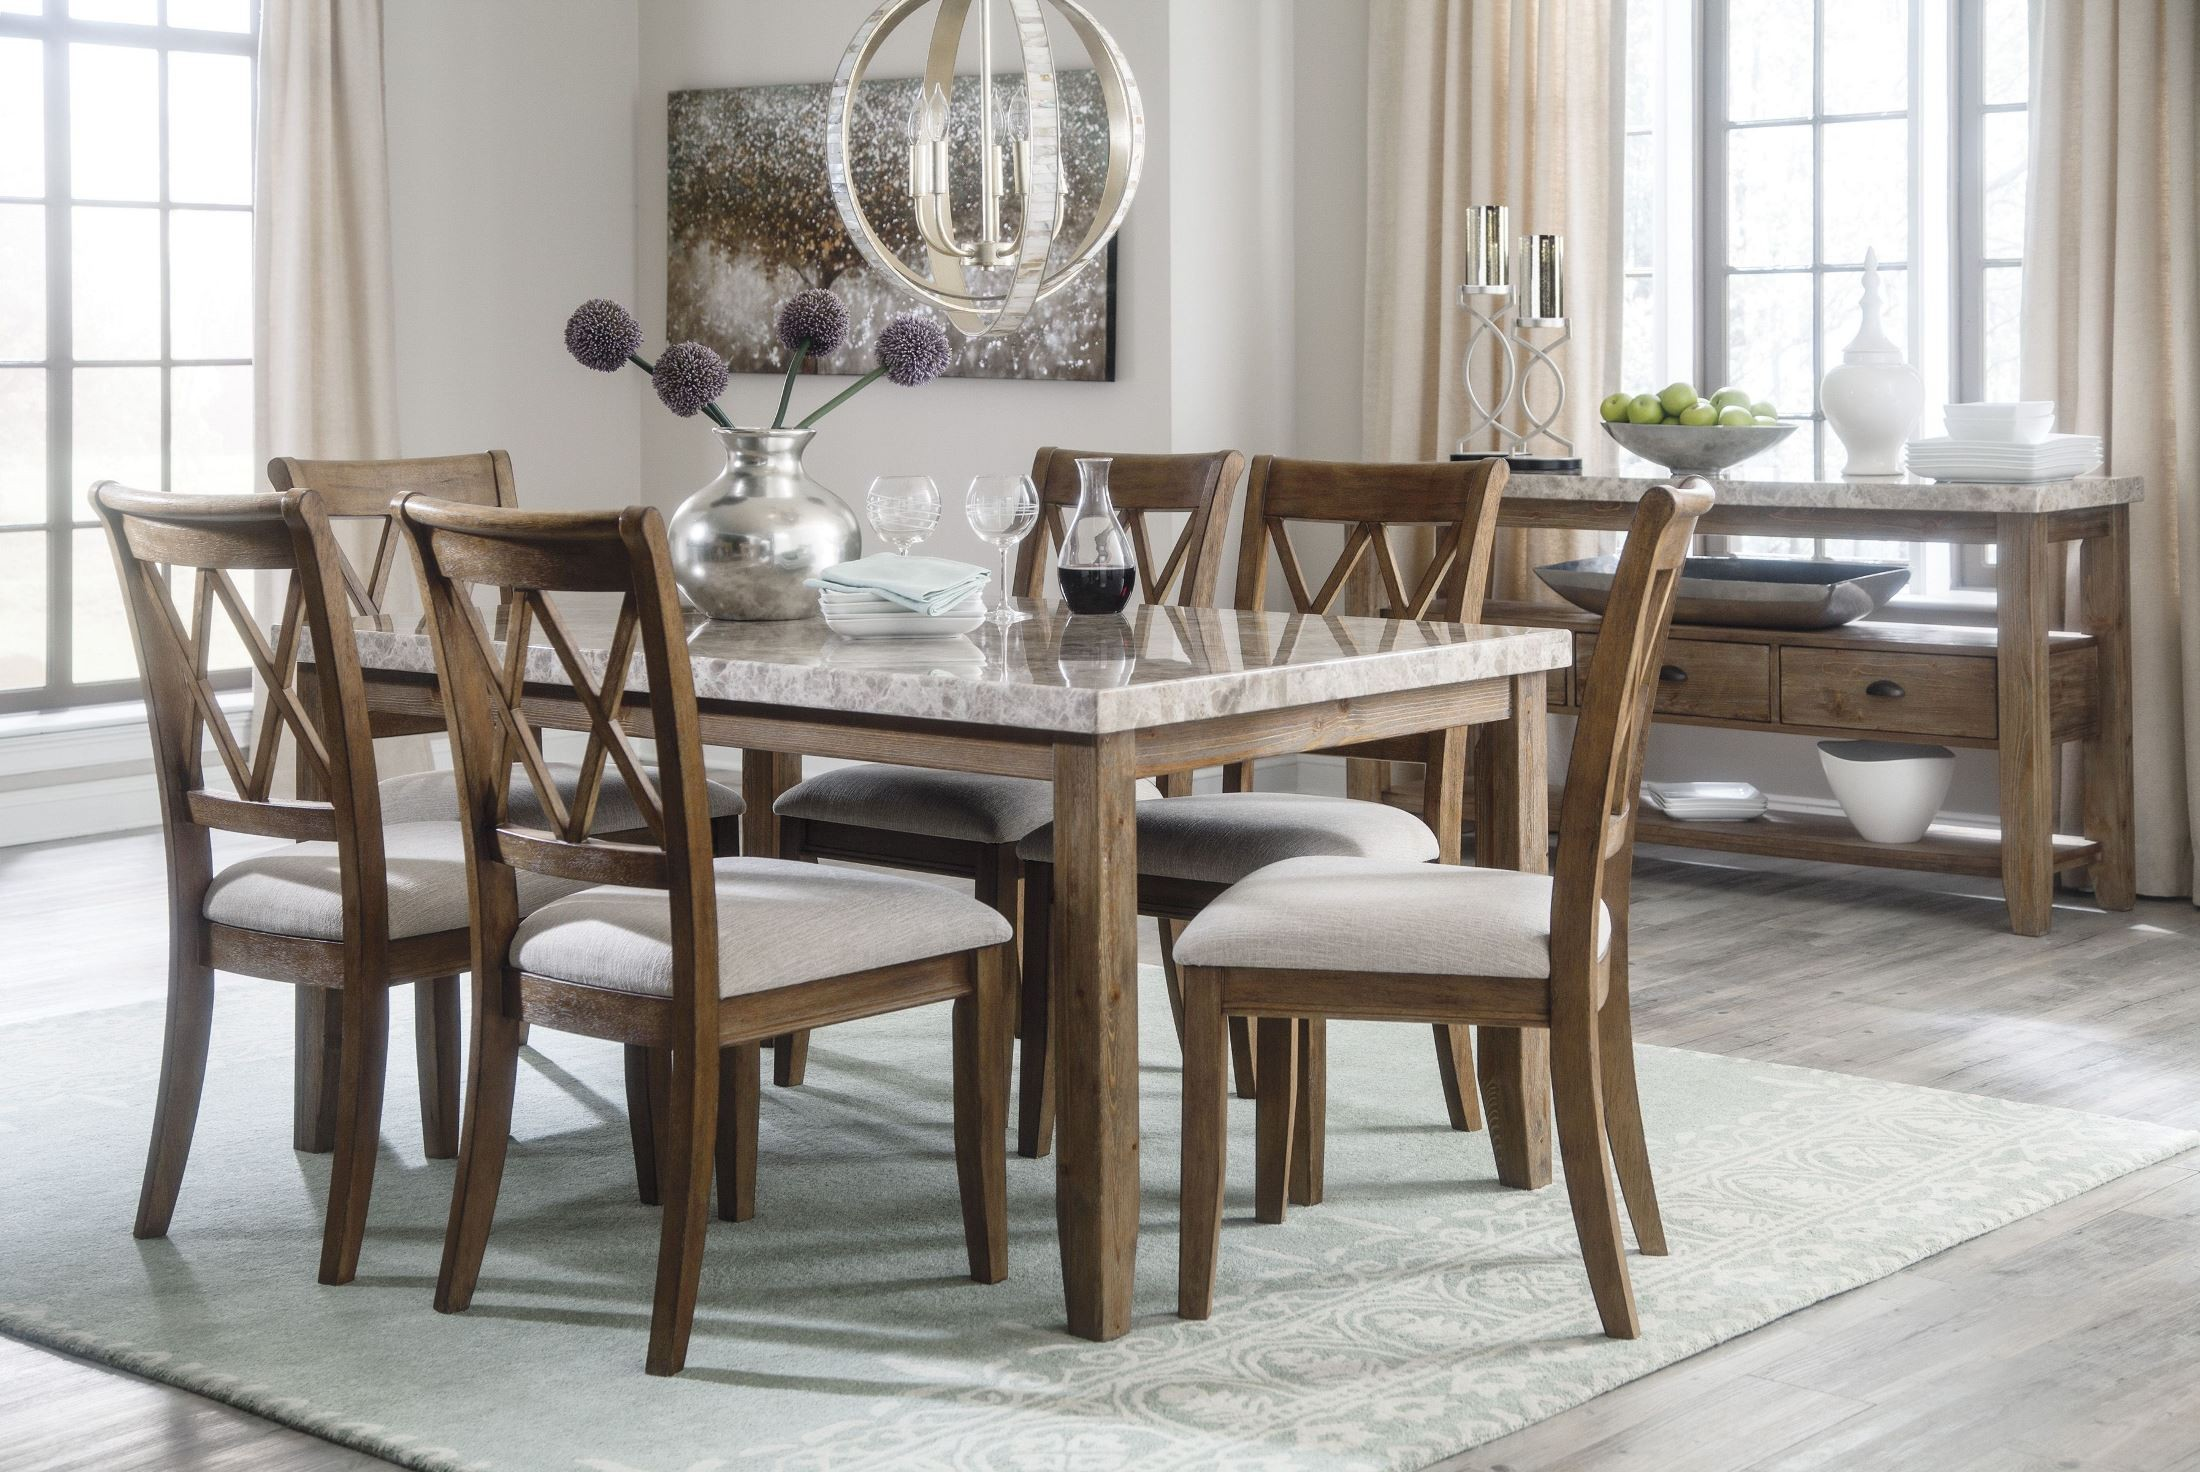 2 Tone Dining Room Sets Of Narvilla Two Tone Rectangular Dining Room Set D559 25 Ashley